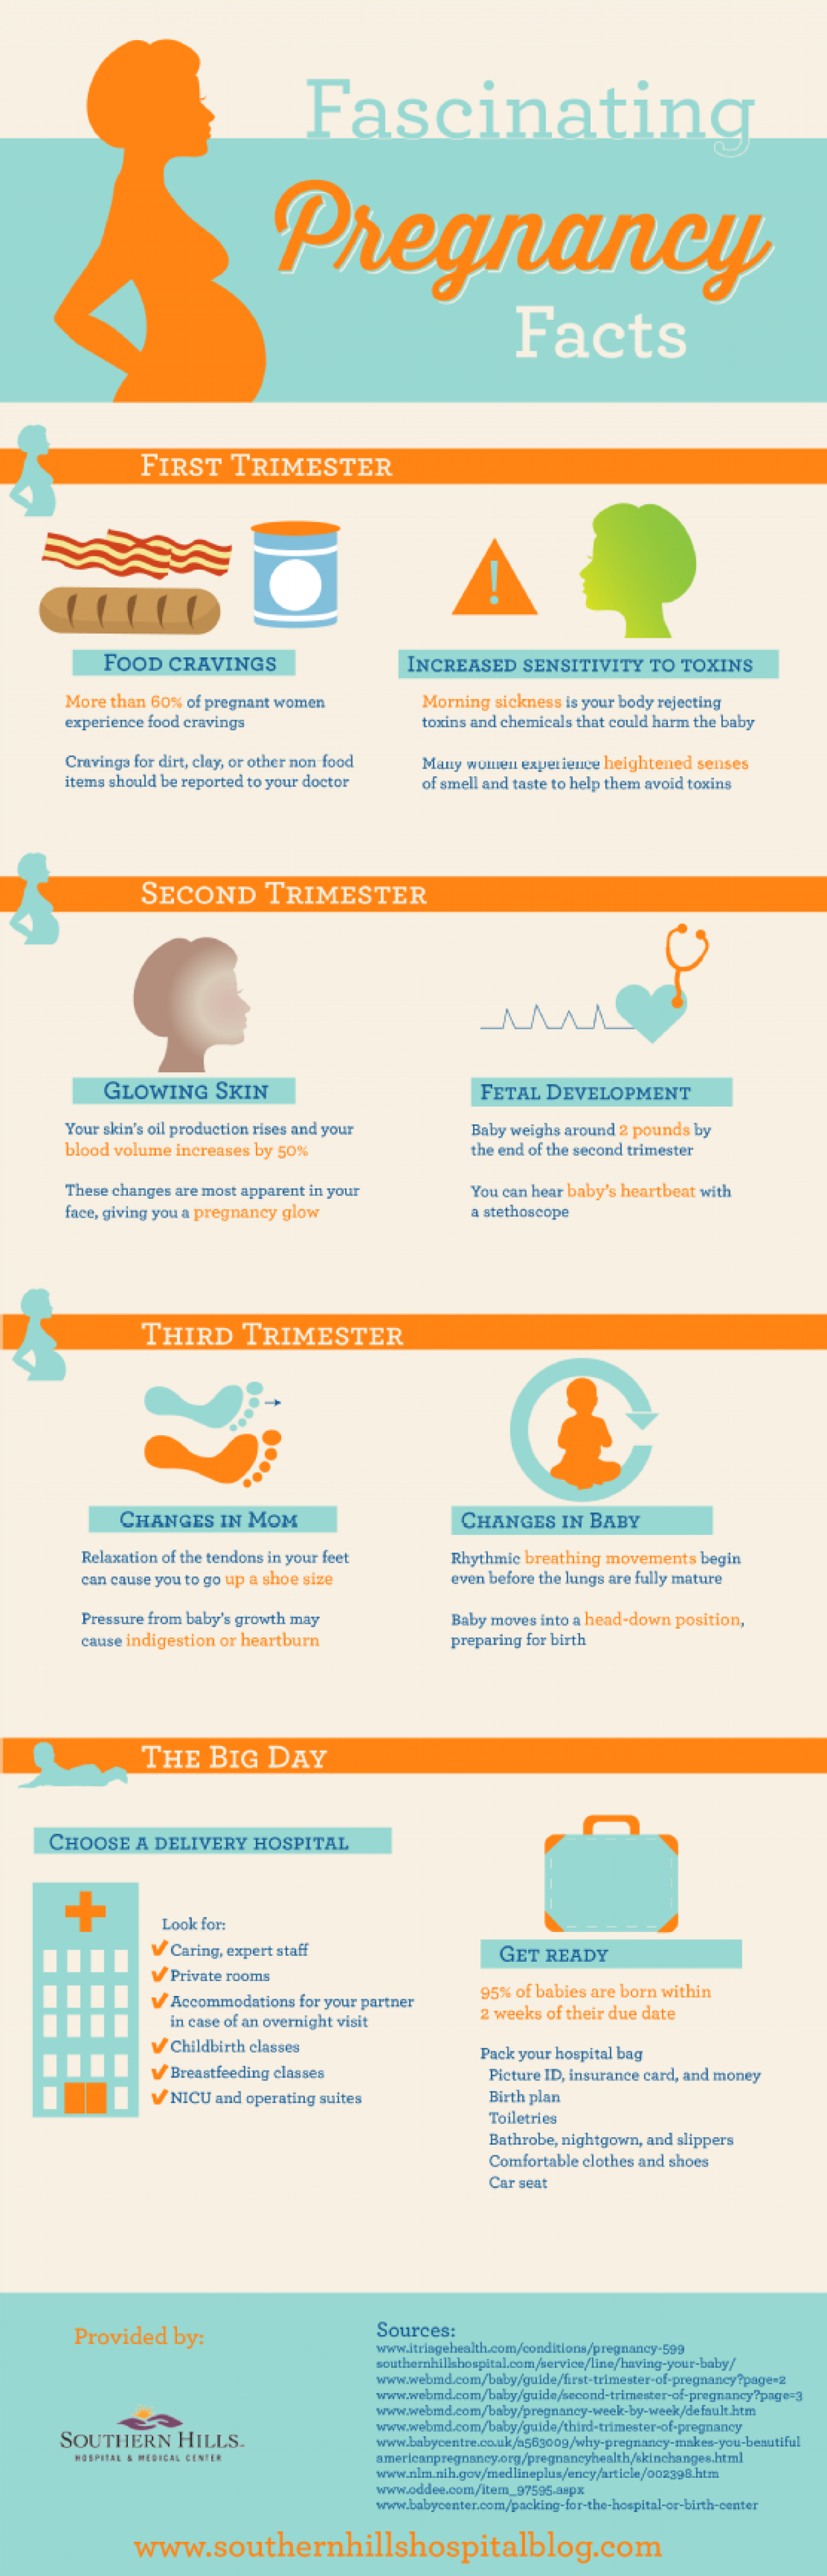 Fascinating Pregnancy Facts Infographic